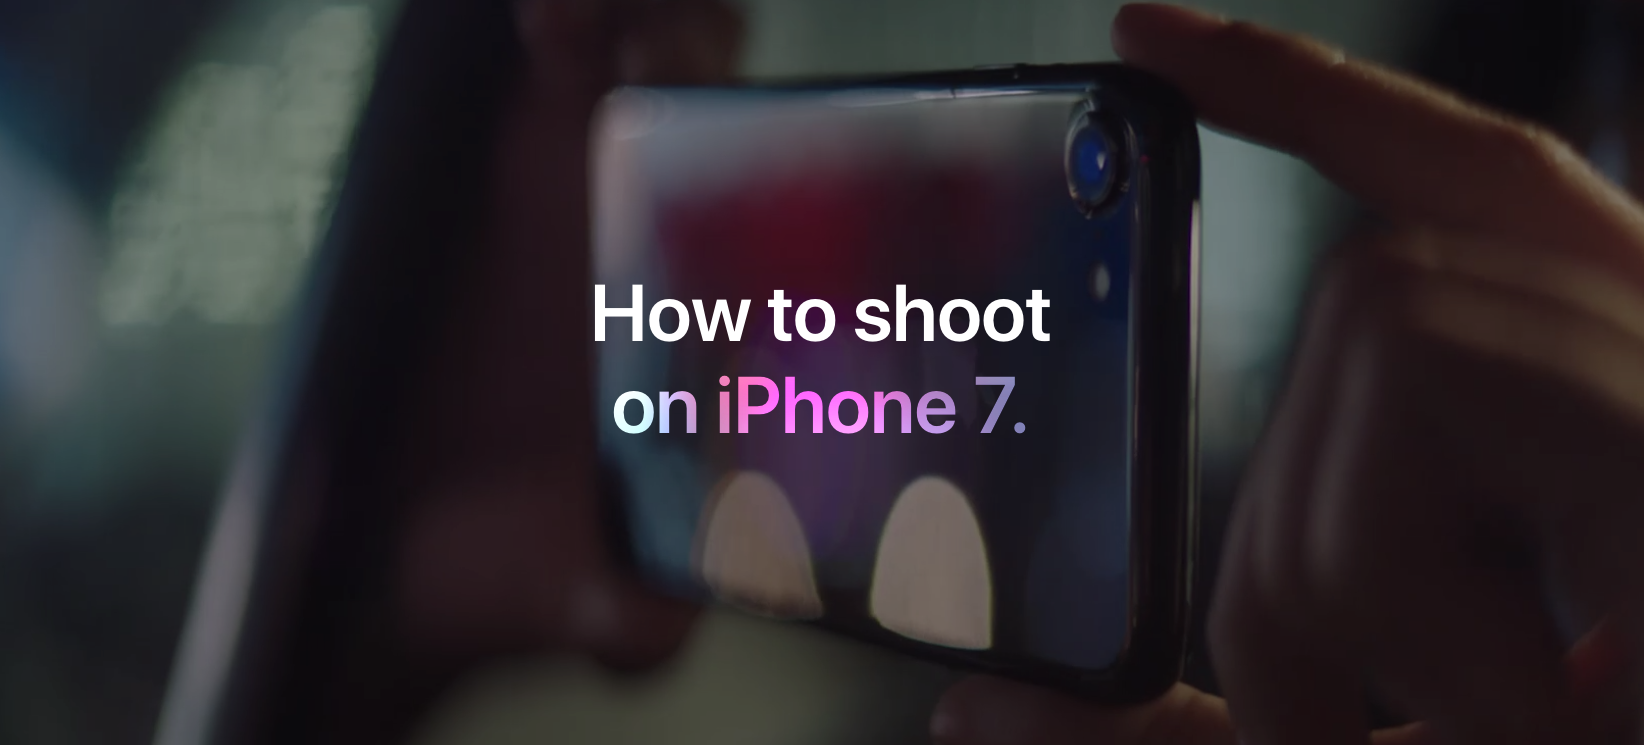 iPhone How To